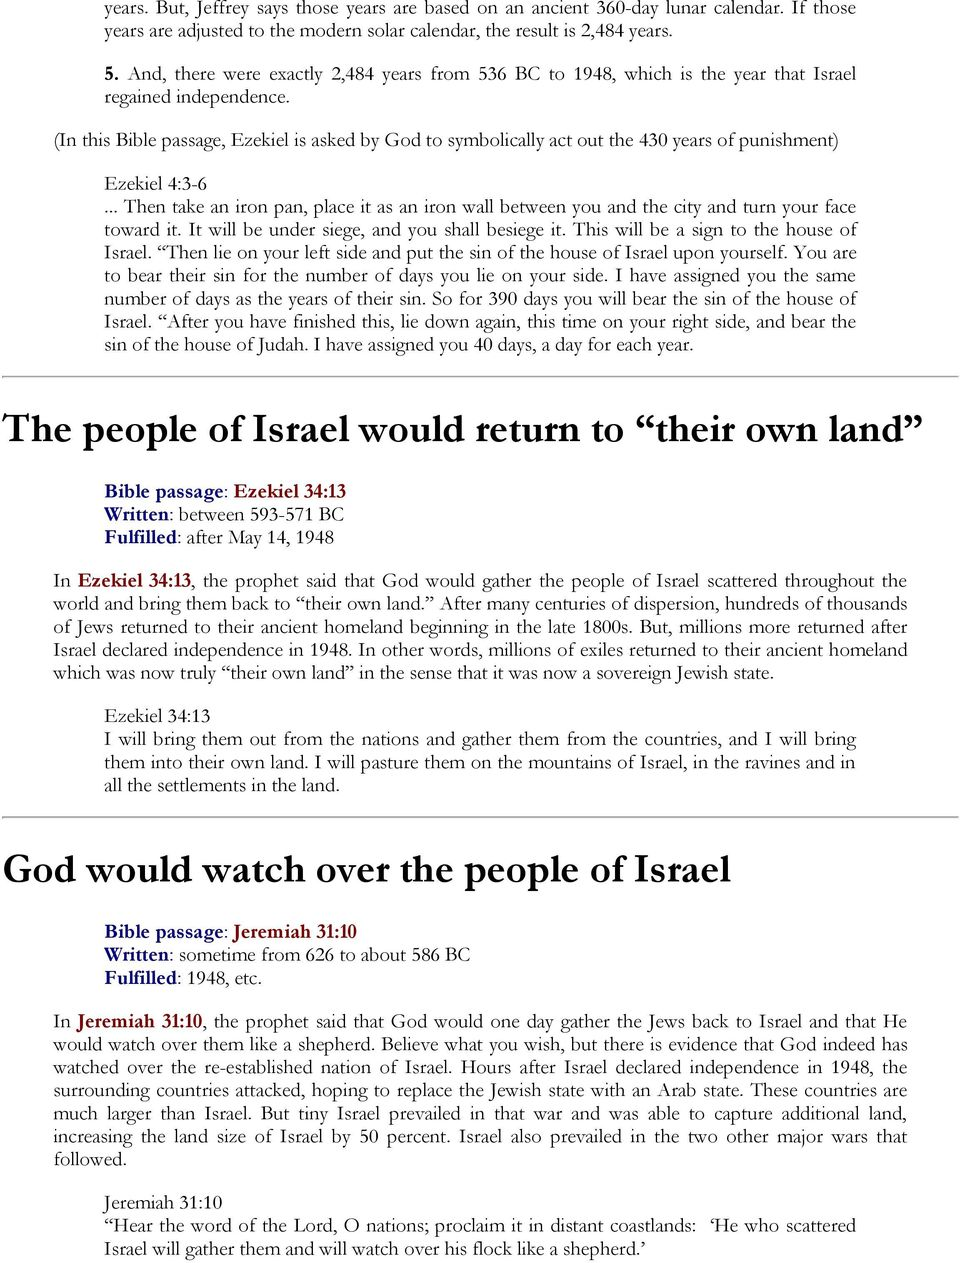 (In this Bible passage, Ezekiel is asked by God to symbolically act out the 430 years of punishment) Ezekiel 4:3-6.